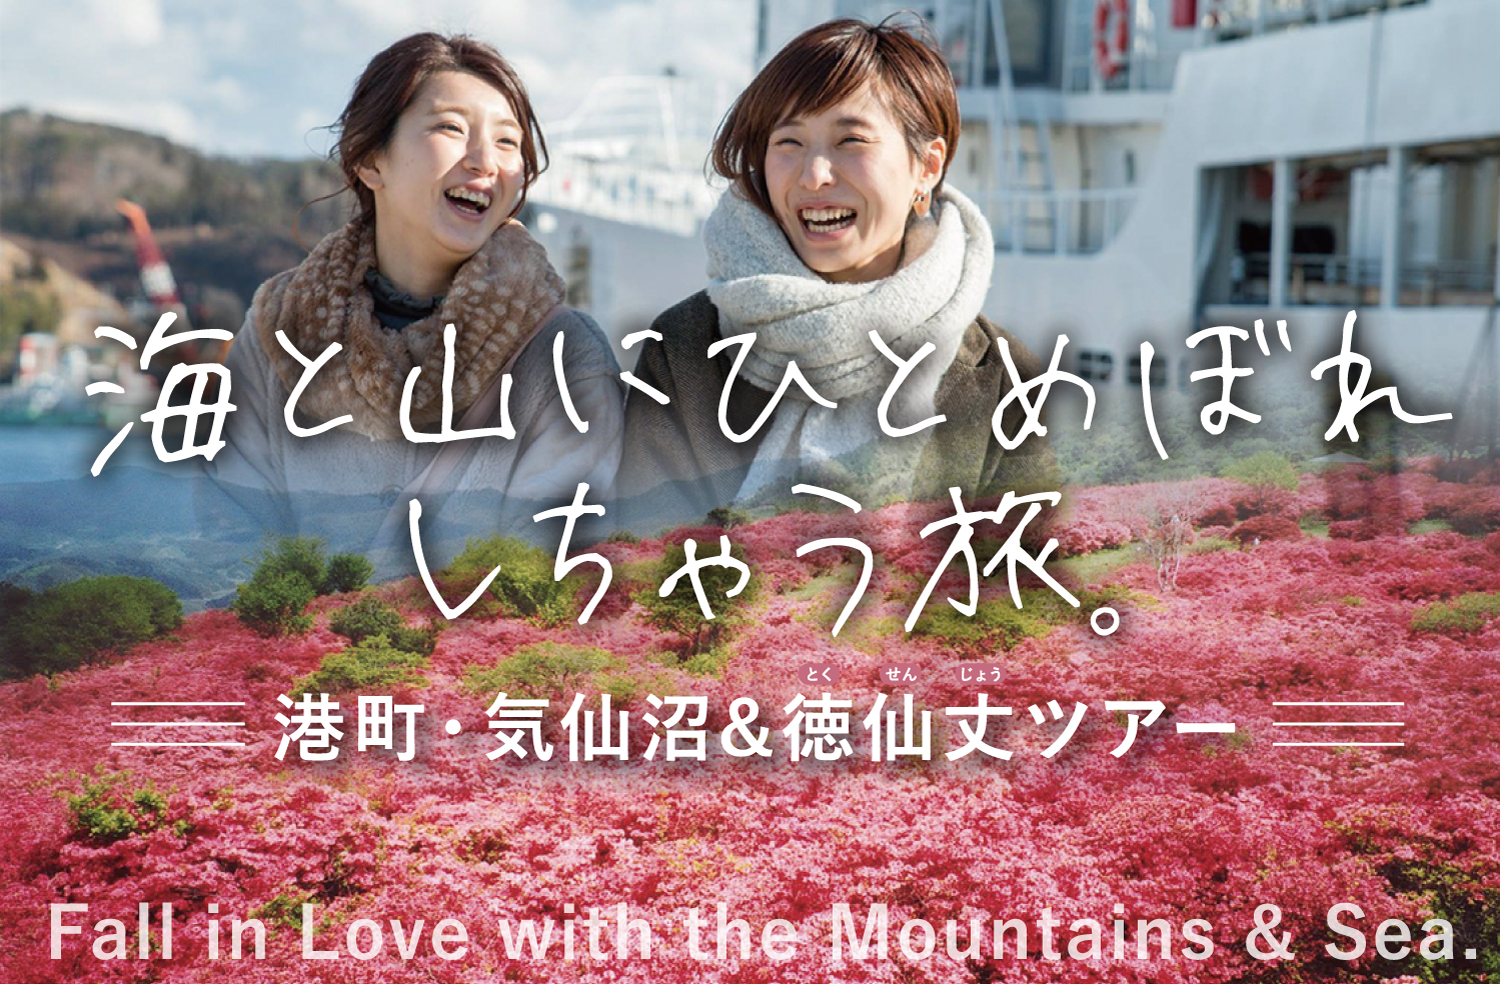 Fall in Love with the Mountains & Sea. - Kesennuma・Port Town・Mt. Tokusenjo